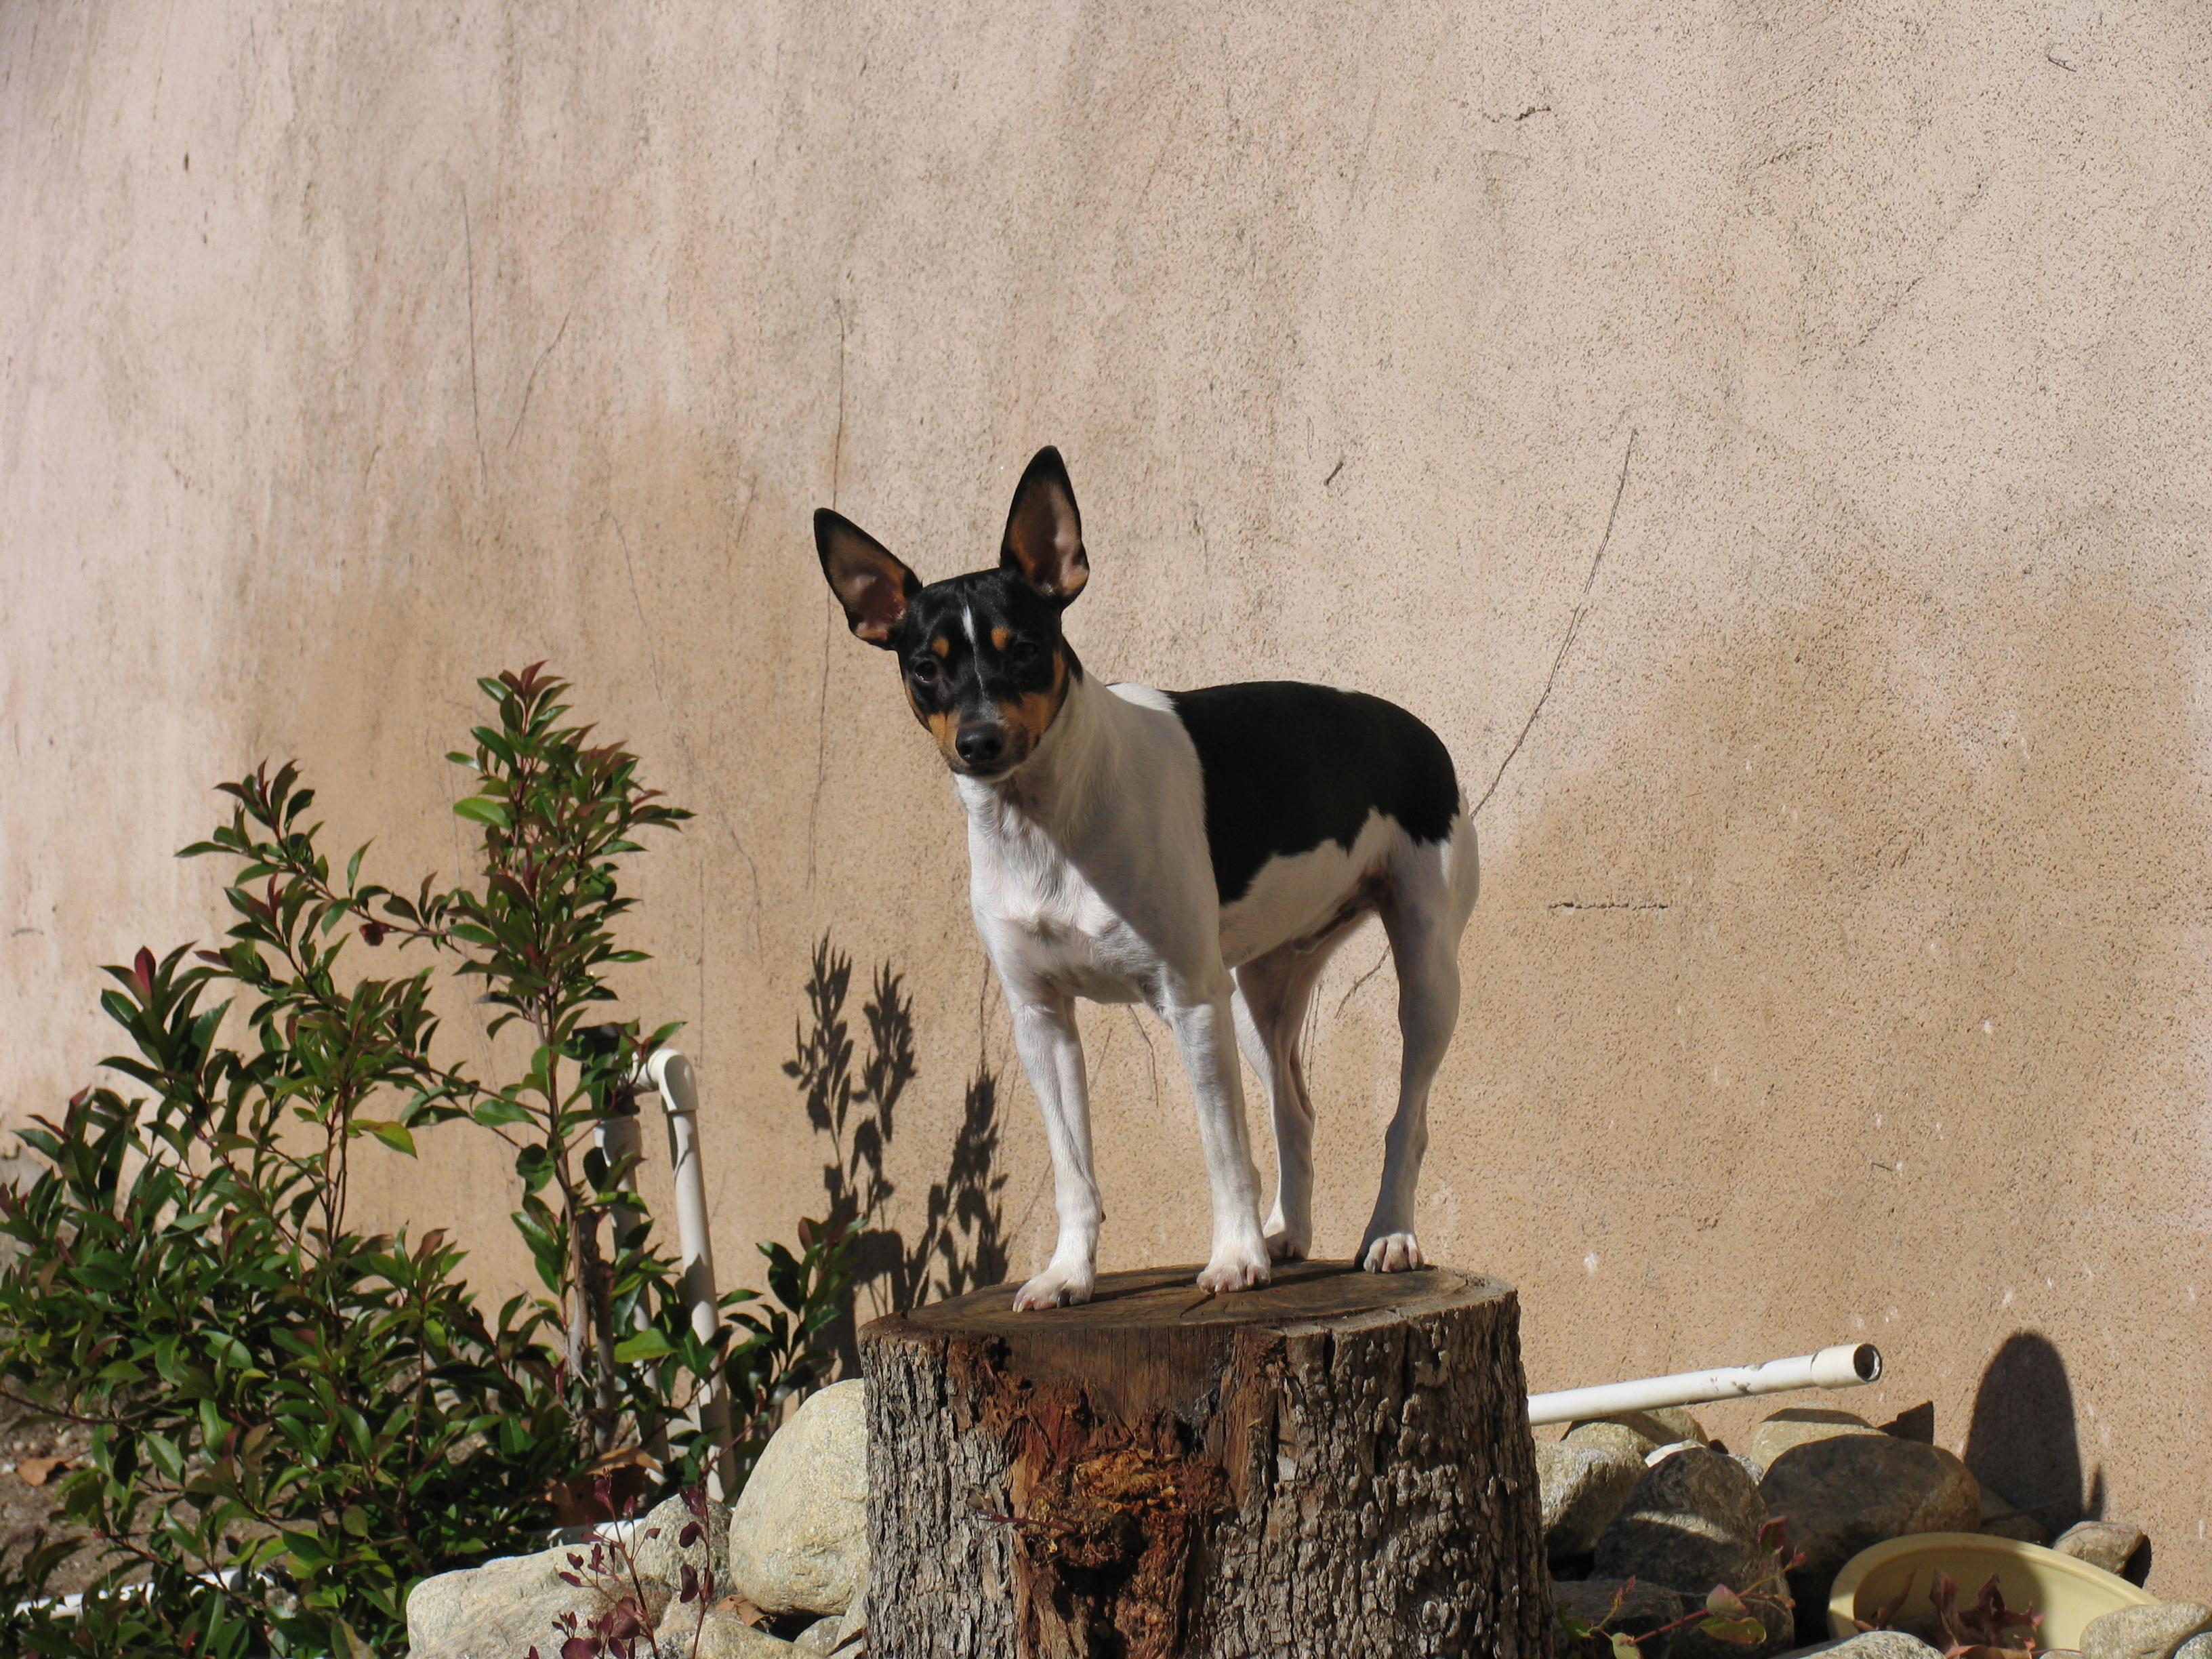 Rat Terrier Facts - Jenna Pope Writes